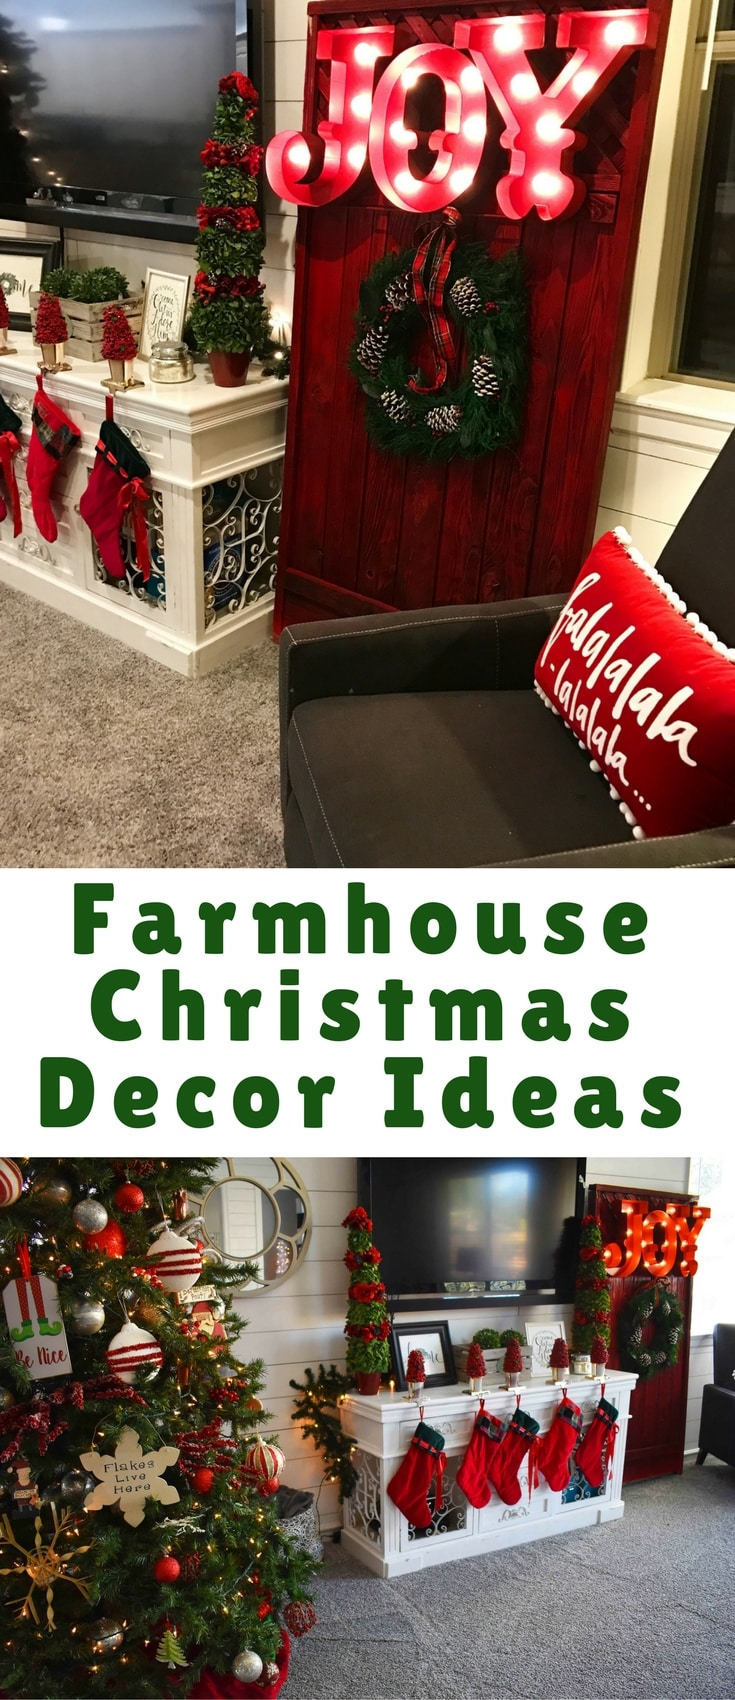 I couldn't wait to have my own home and decorate for Christmas and I now look forward to it every year! So I am sharing with you a few of our favorite Christmas decor ideas!